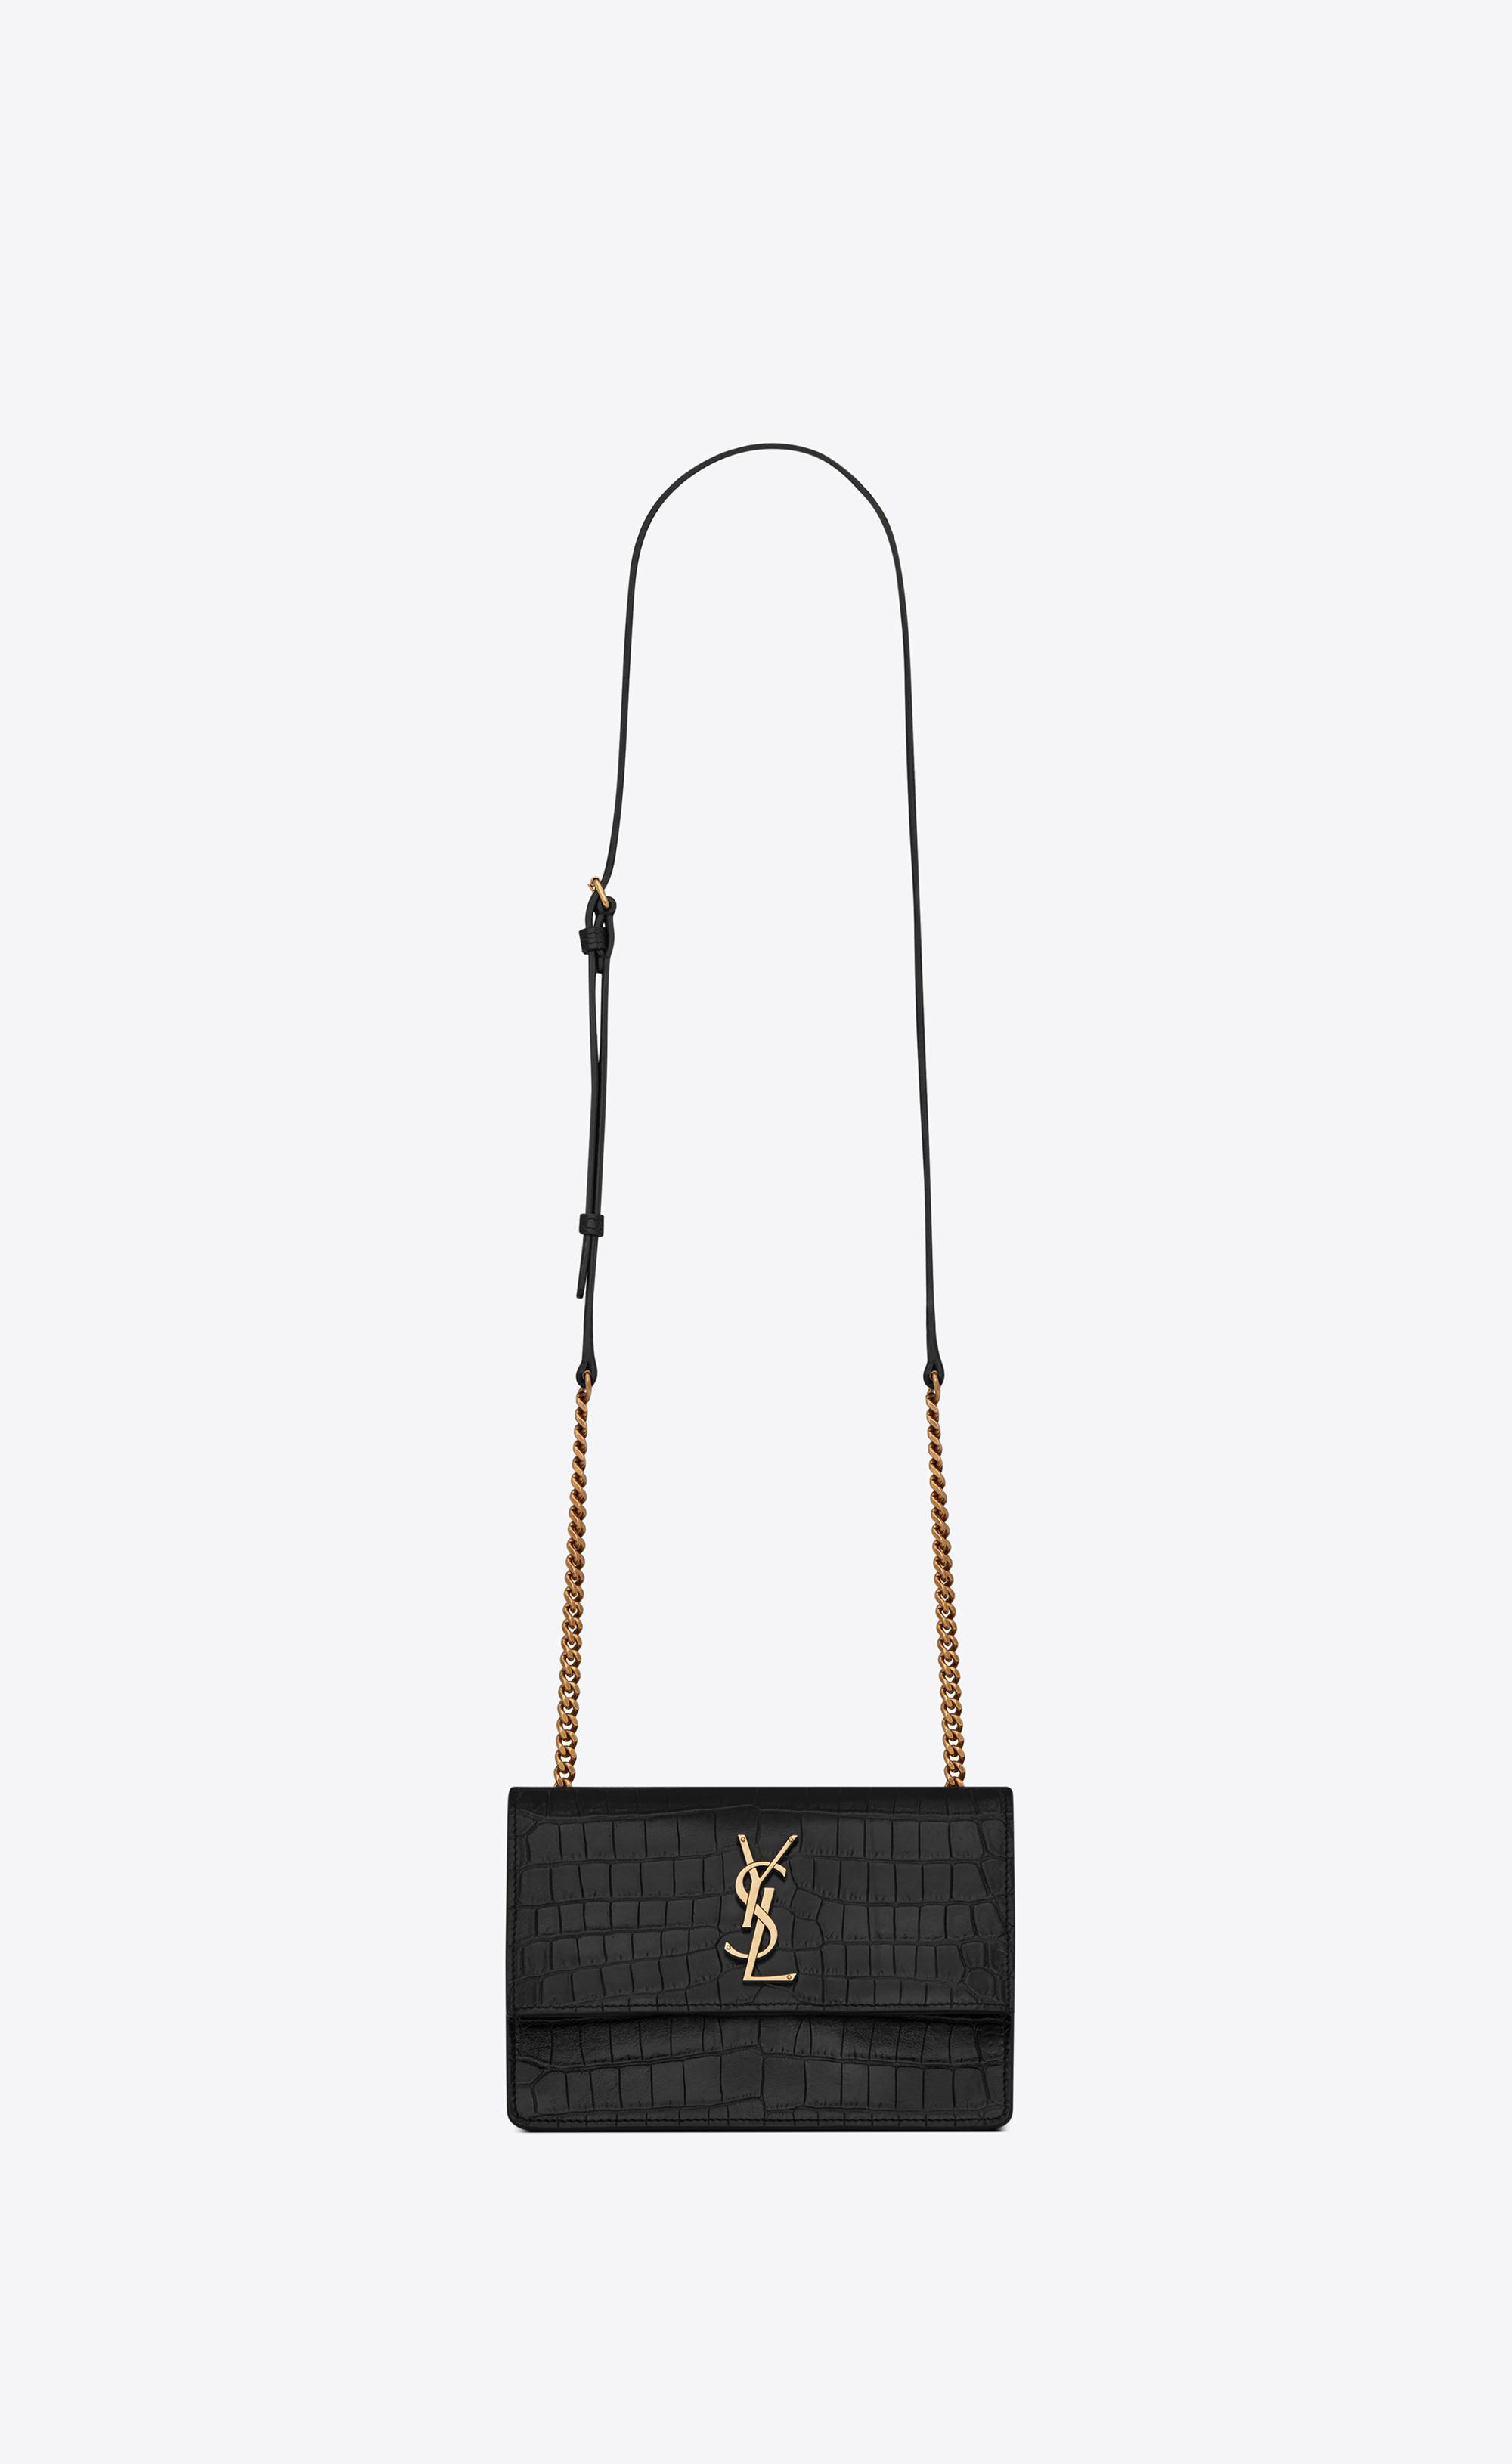 7b06856b59 Saint Laurent. Women s Black Sunset Small In Supple Crocodile Embossed  Leather